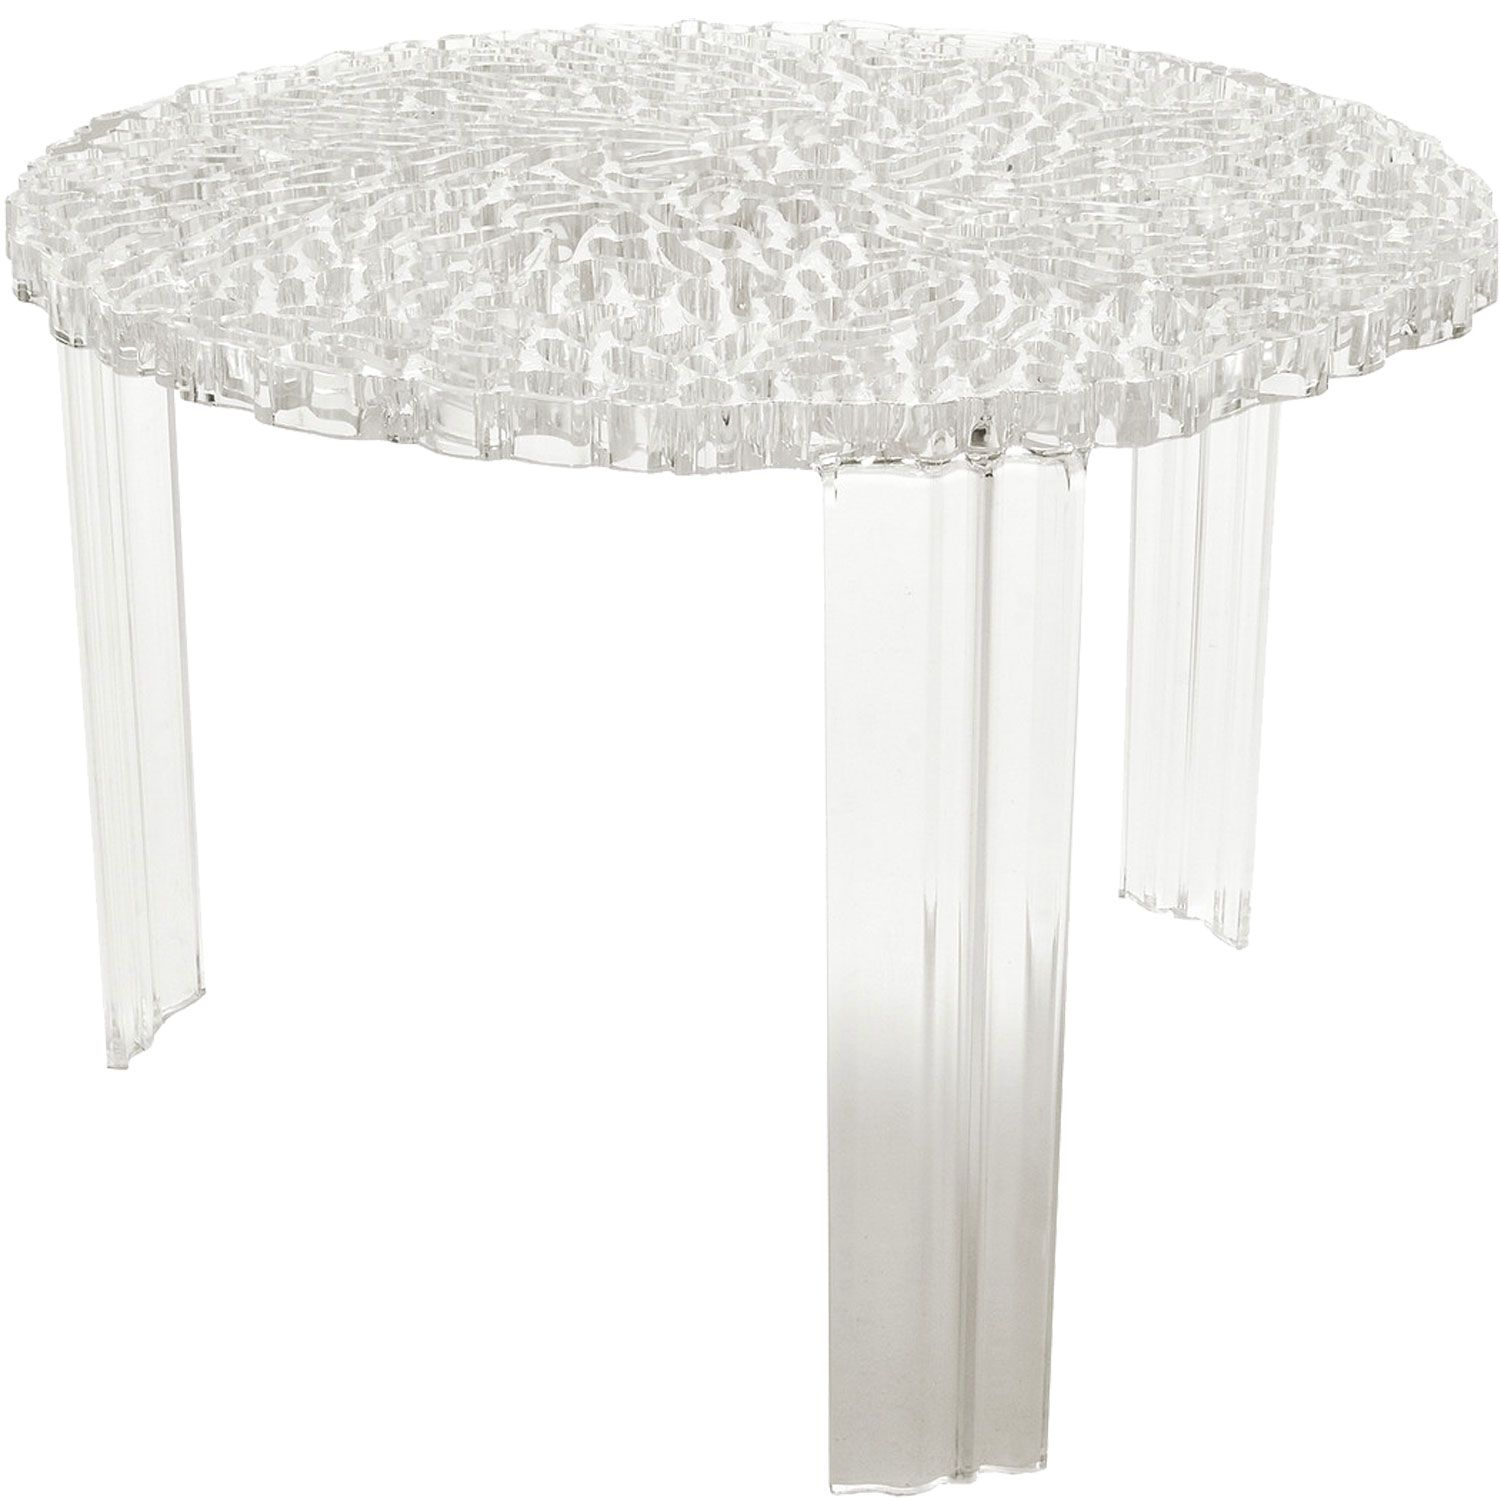 Kartell T Table Bijzettafel.T Table Sidebord Krystall Liten Interior Bord Mobler